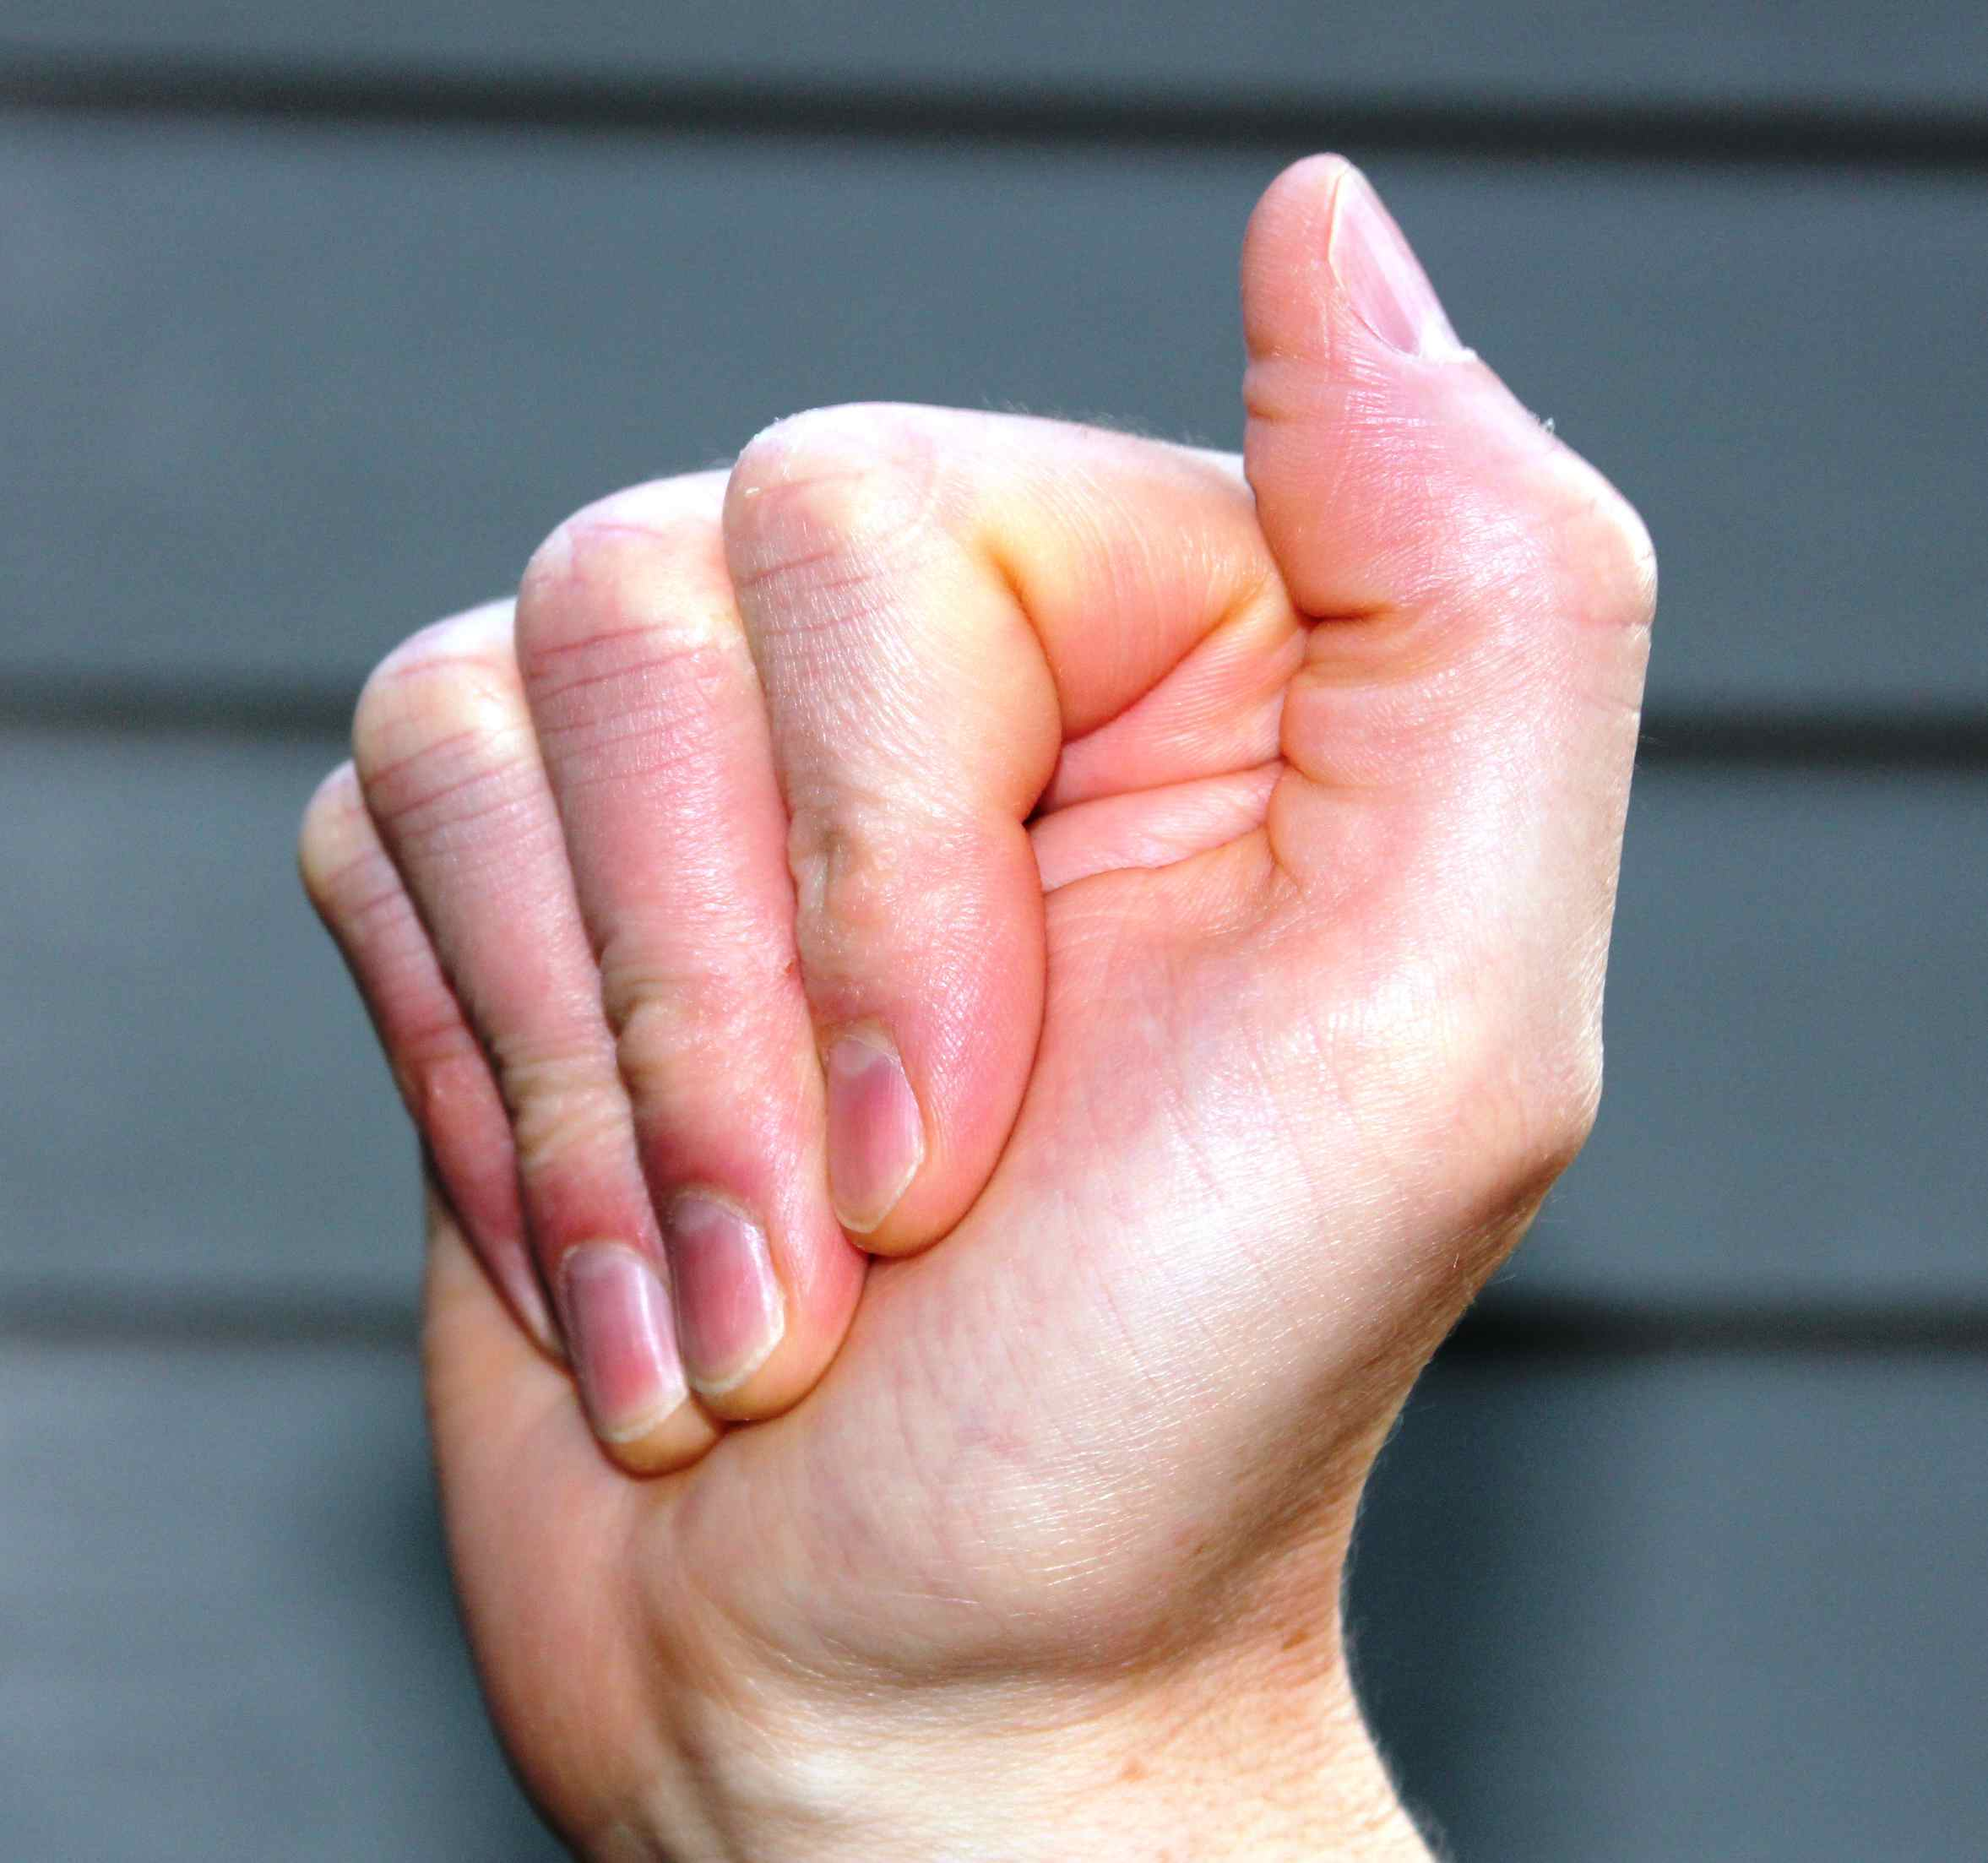 hand demonstrating fingers to palm position